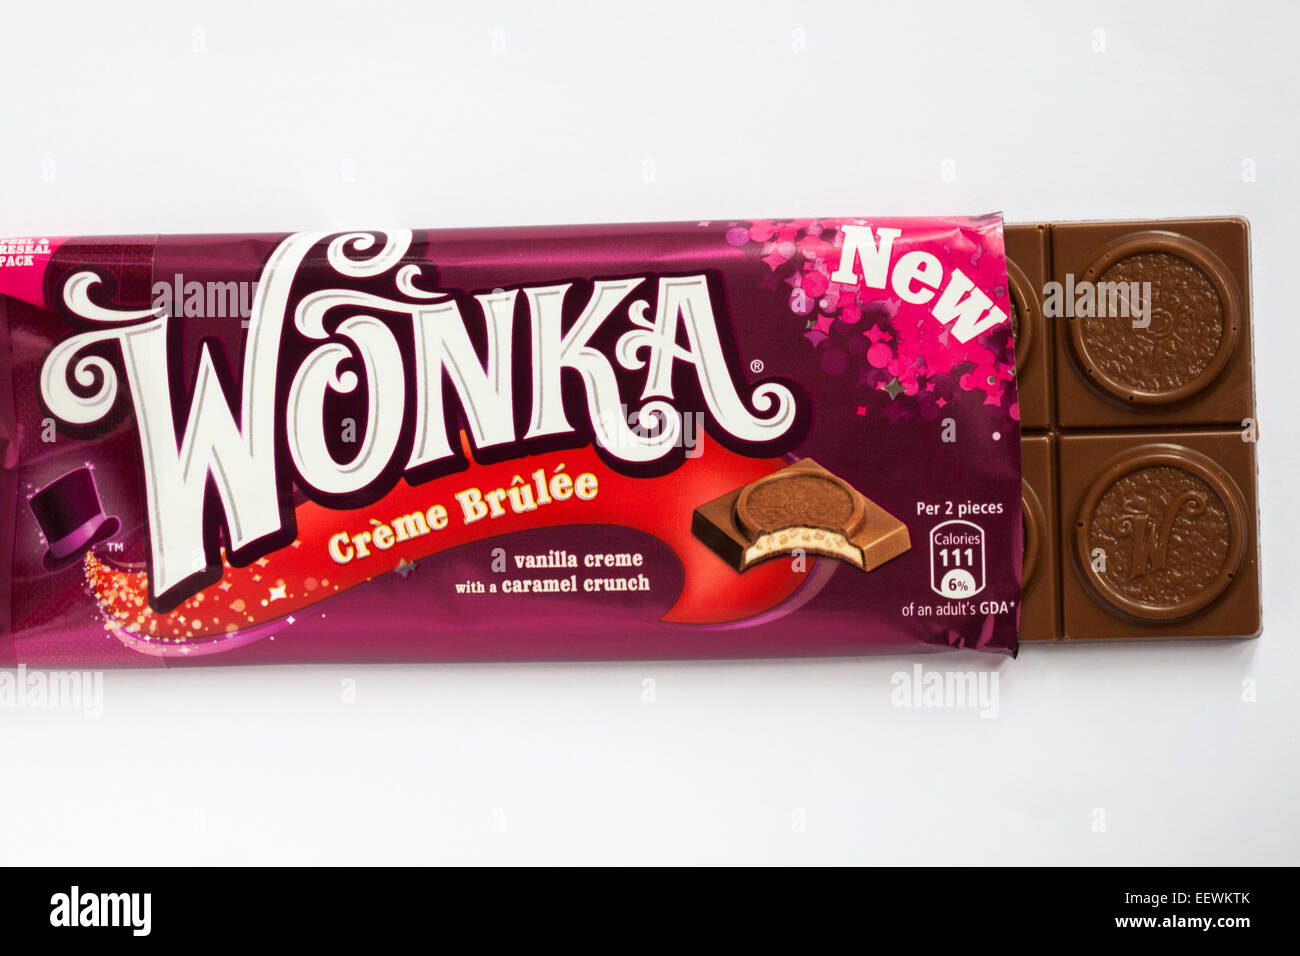 Wonka Bar Stock Photos & Wonka Bar Stock Images - Alamy